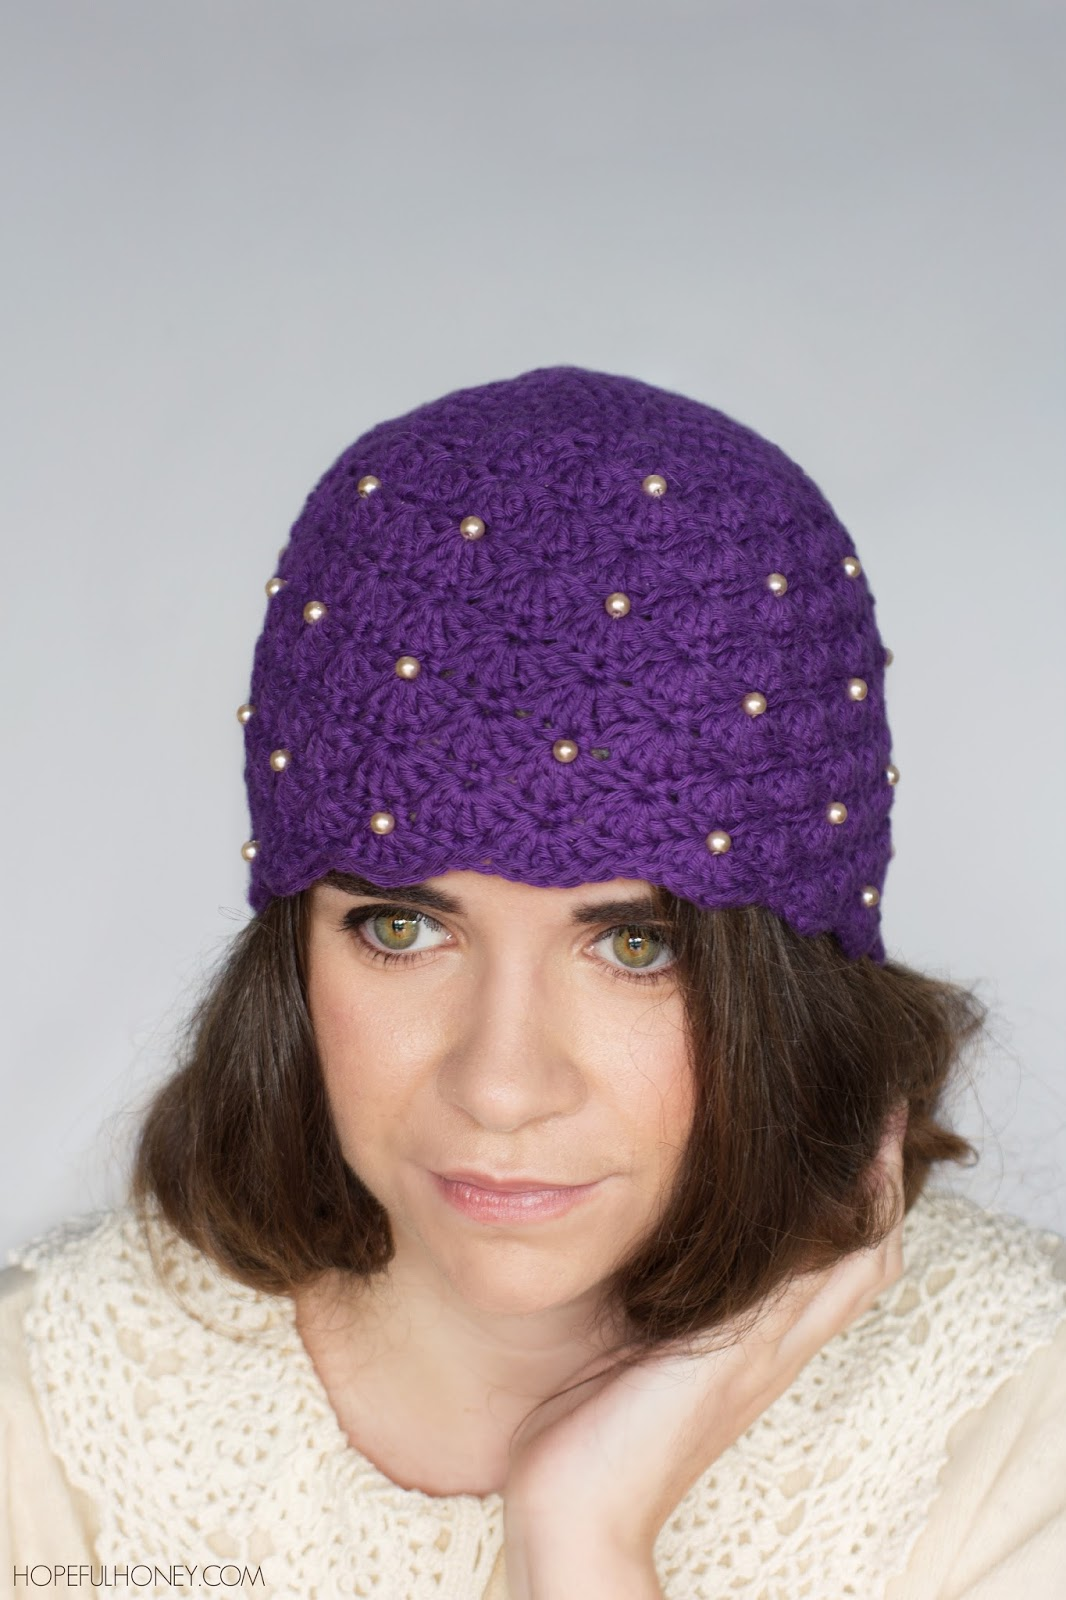 Crochet Pattern For A Cloche Hat : Hopeful Honey Craft, Crochet, Create: 1920s Scalloped ...